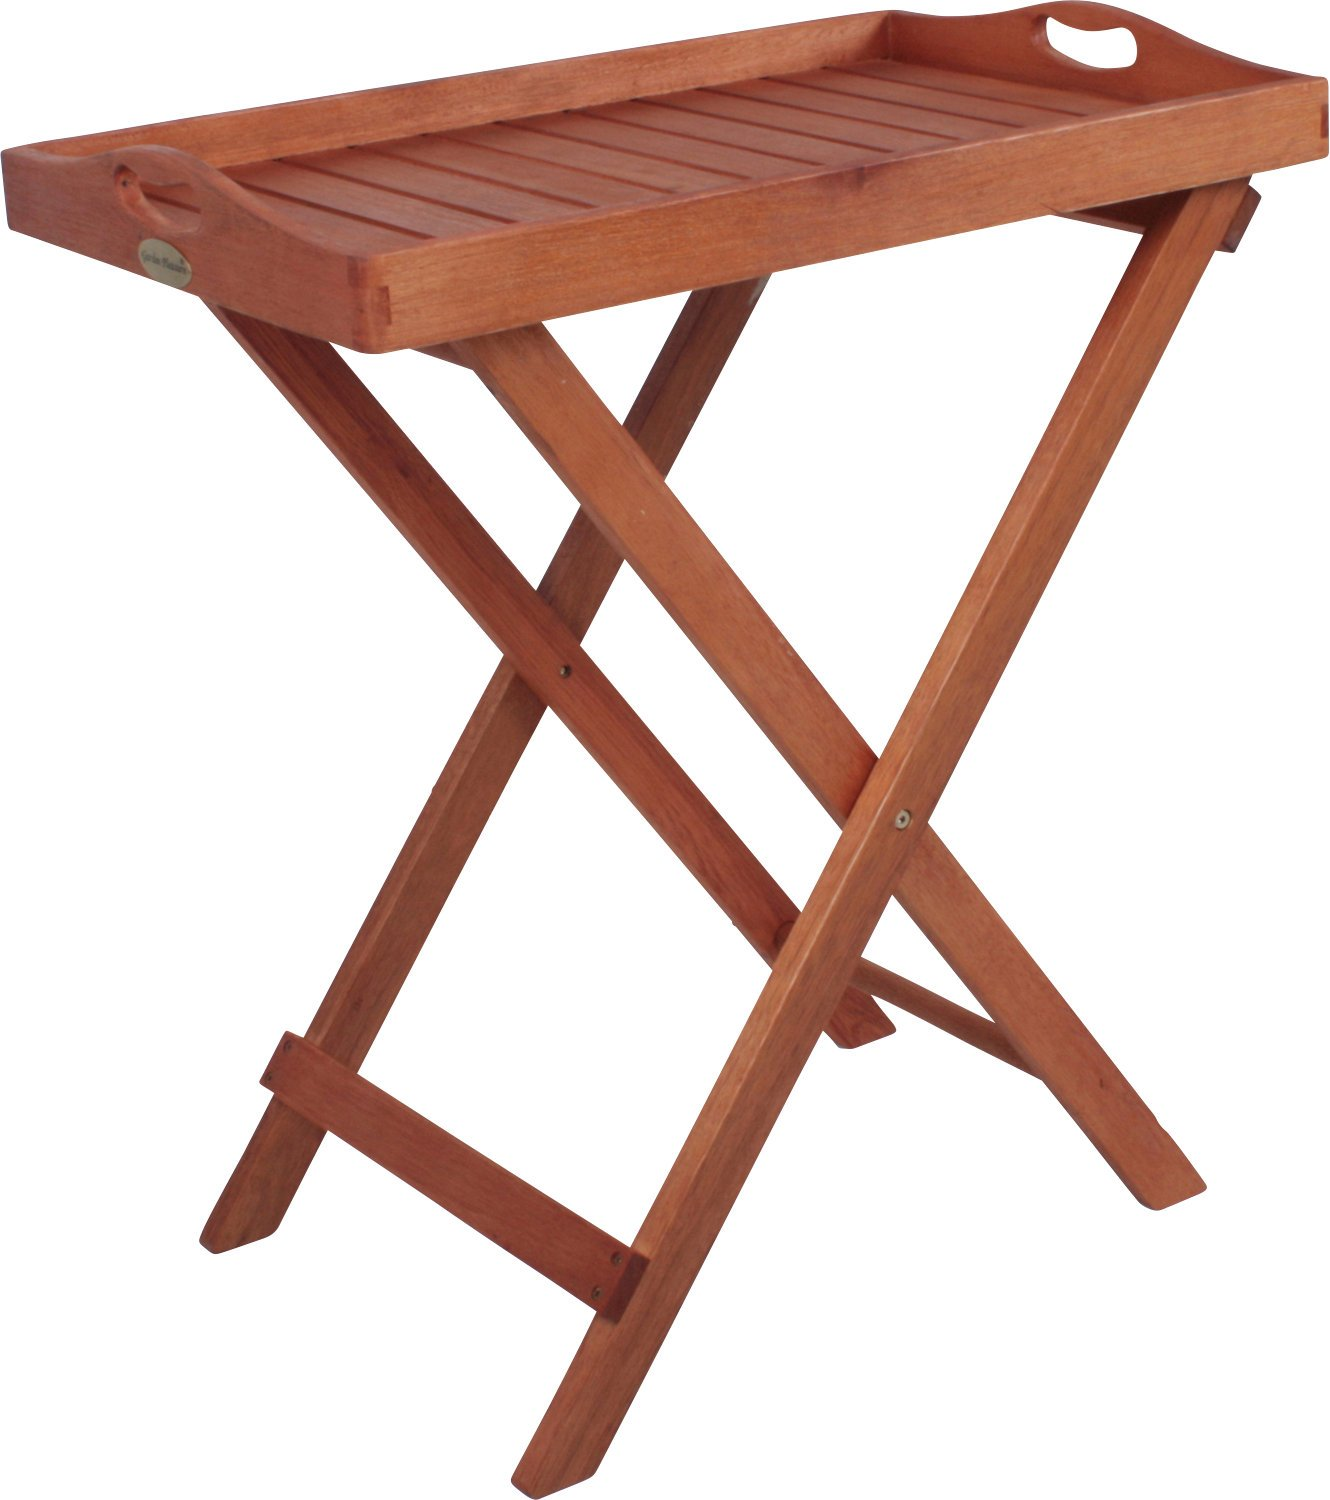 tray stand folding tray table coffee table garden table oiled dallas amazoncouk garden outdoors